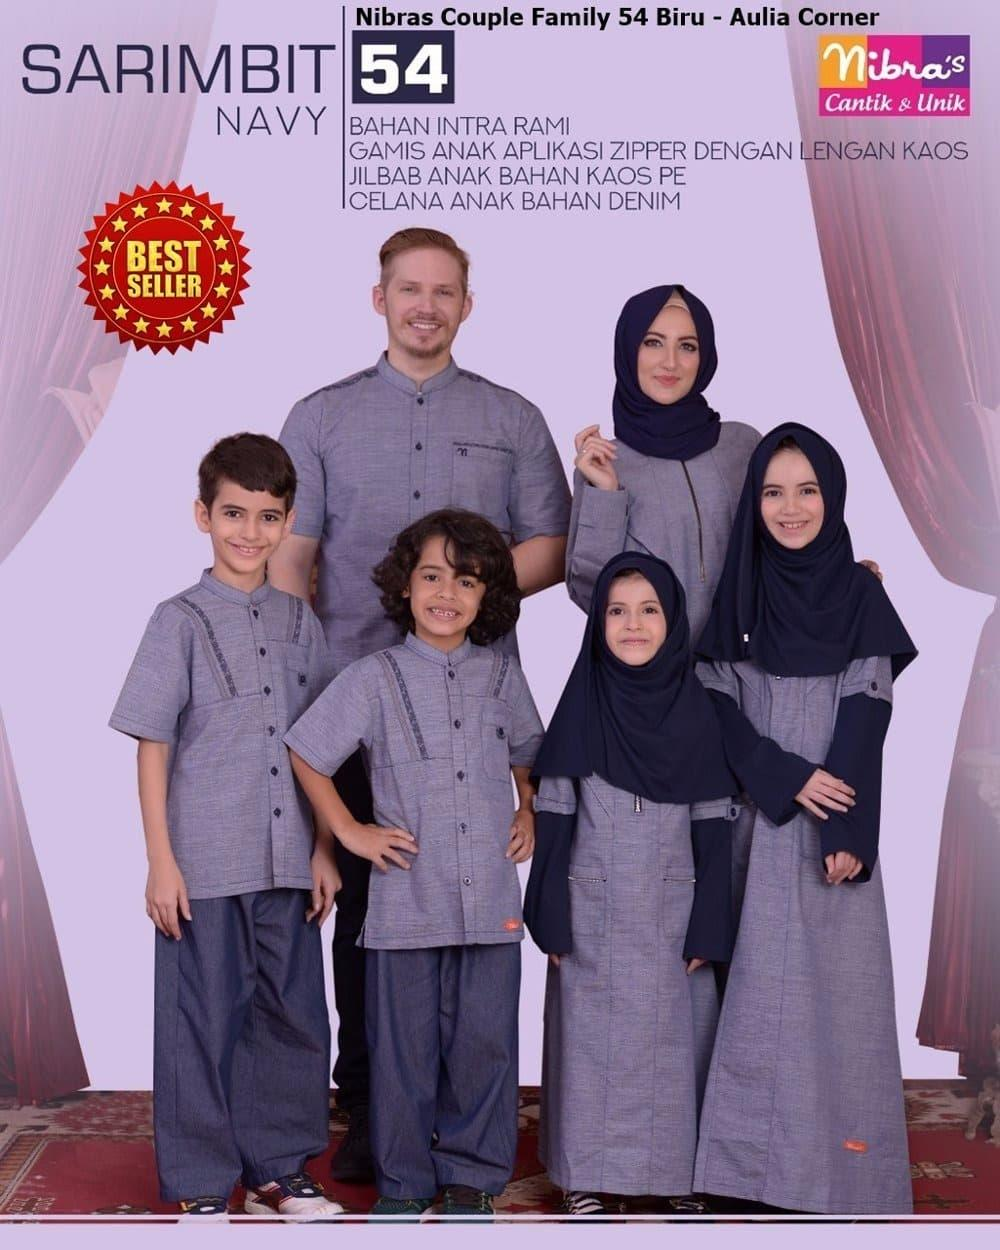 Gamis Couple Keluarga Nibras Couple Family 54 Navy ORIGINAL